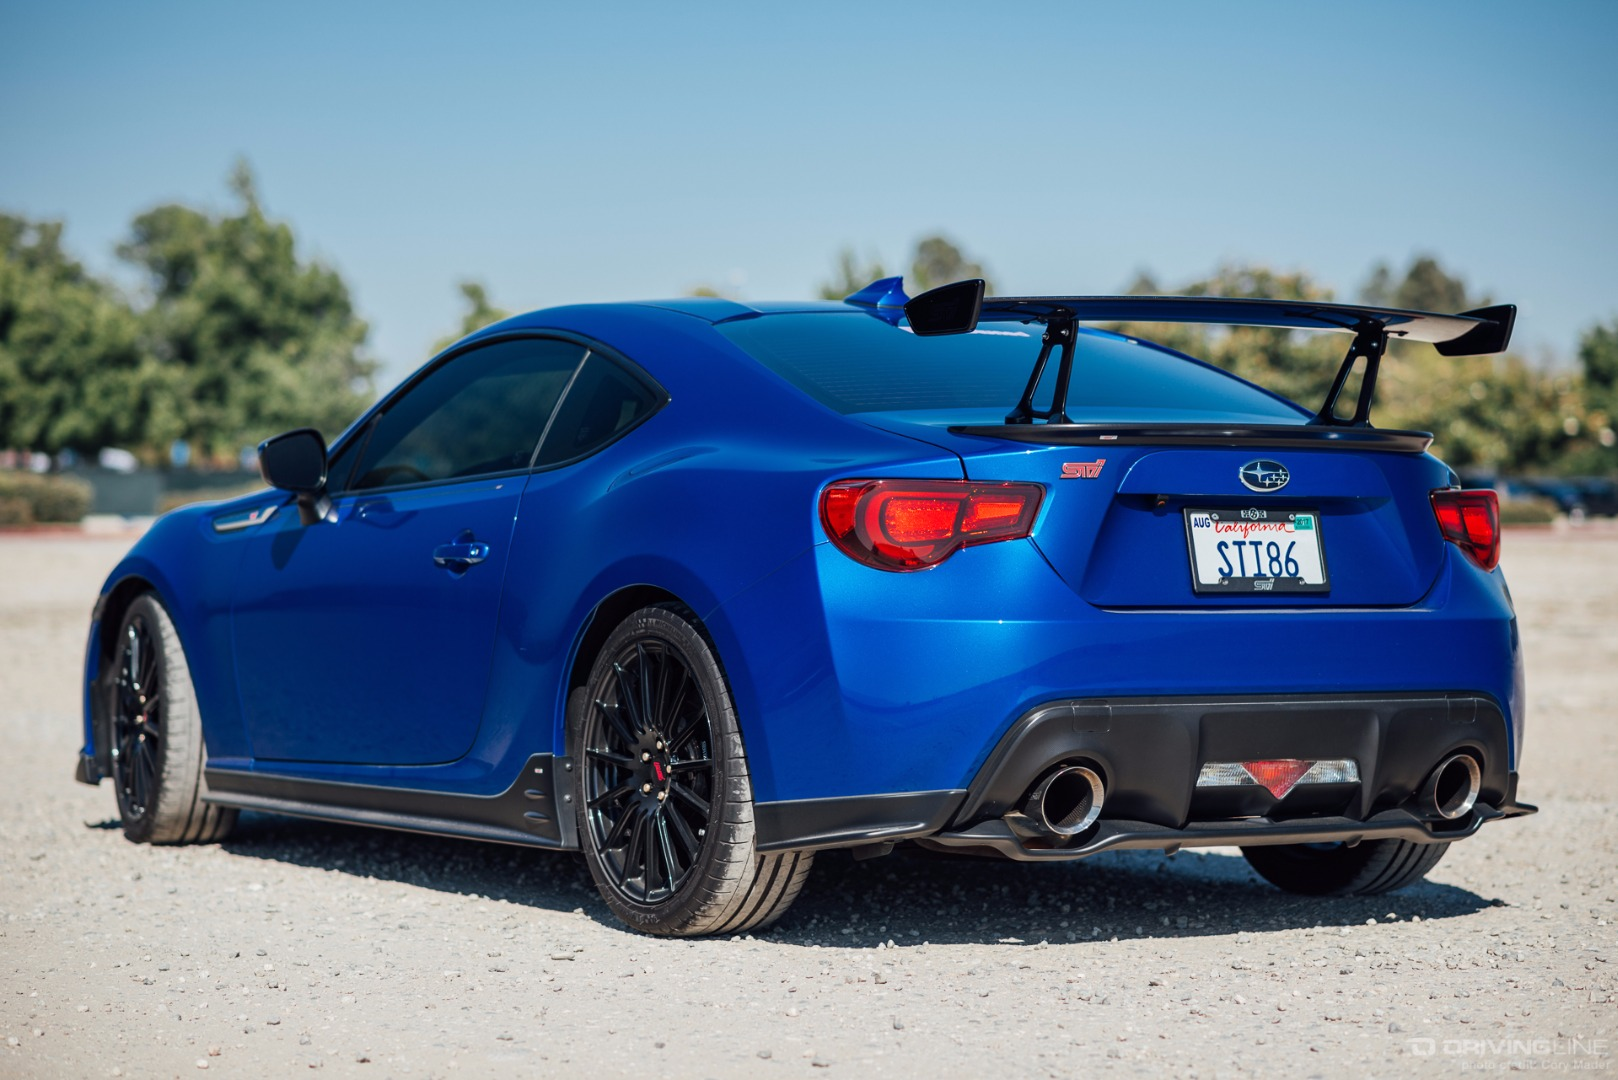 Build A Toyota >> Build-Your-Own tS: Transforming a Subaru BRZ, Piece by Pink-Badged Piece | DrivingLine